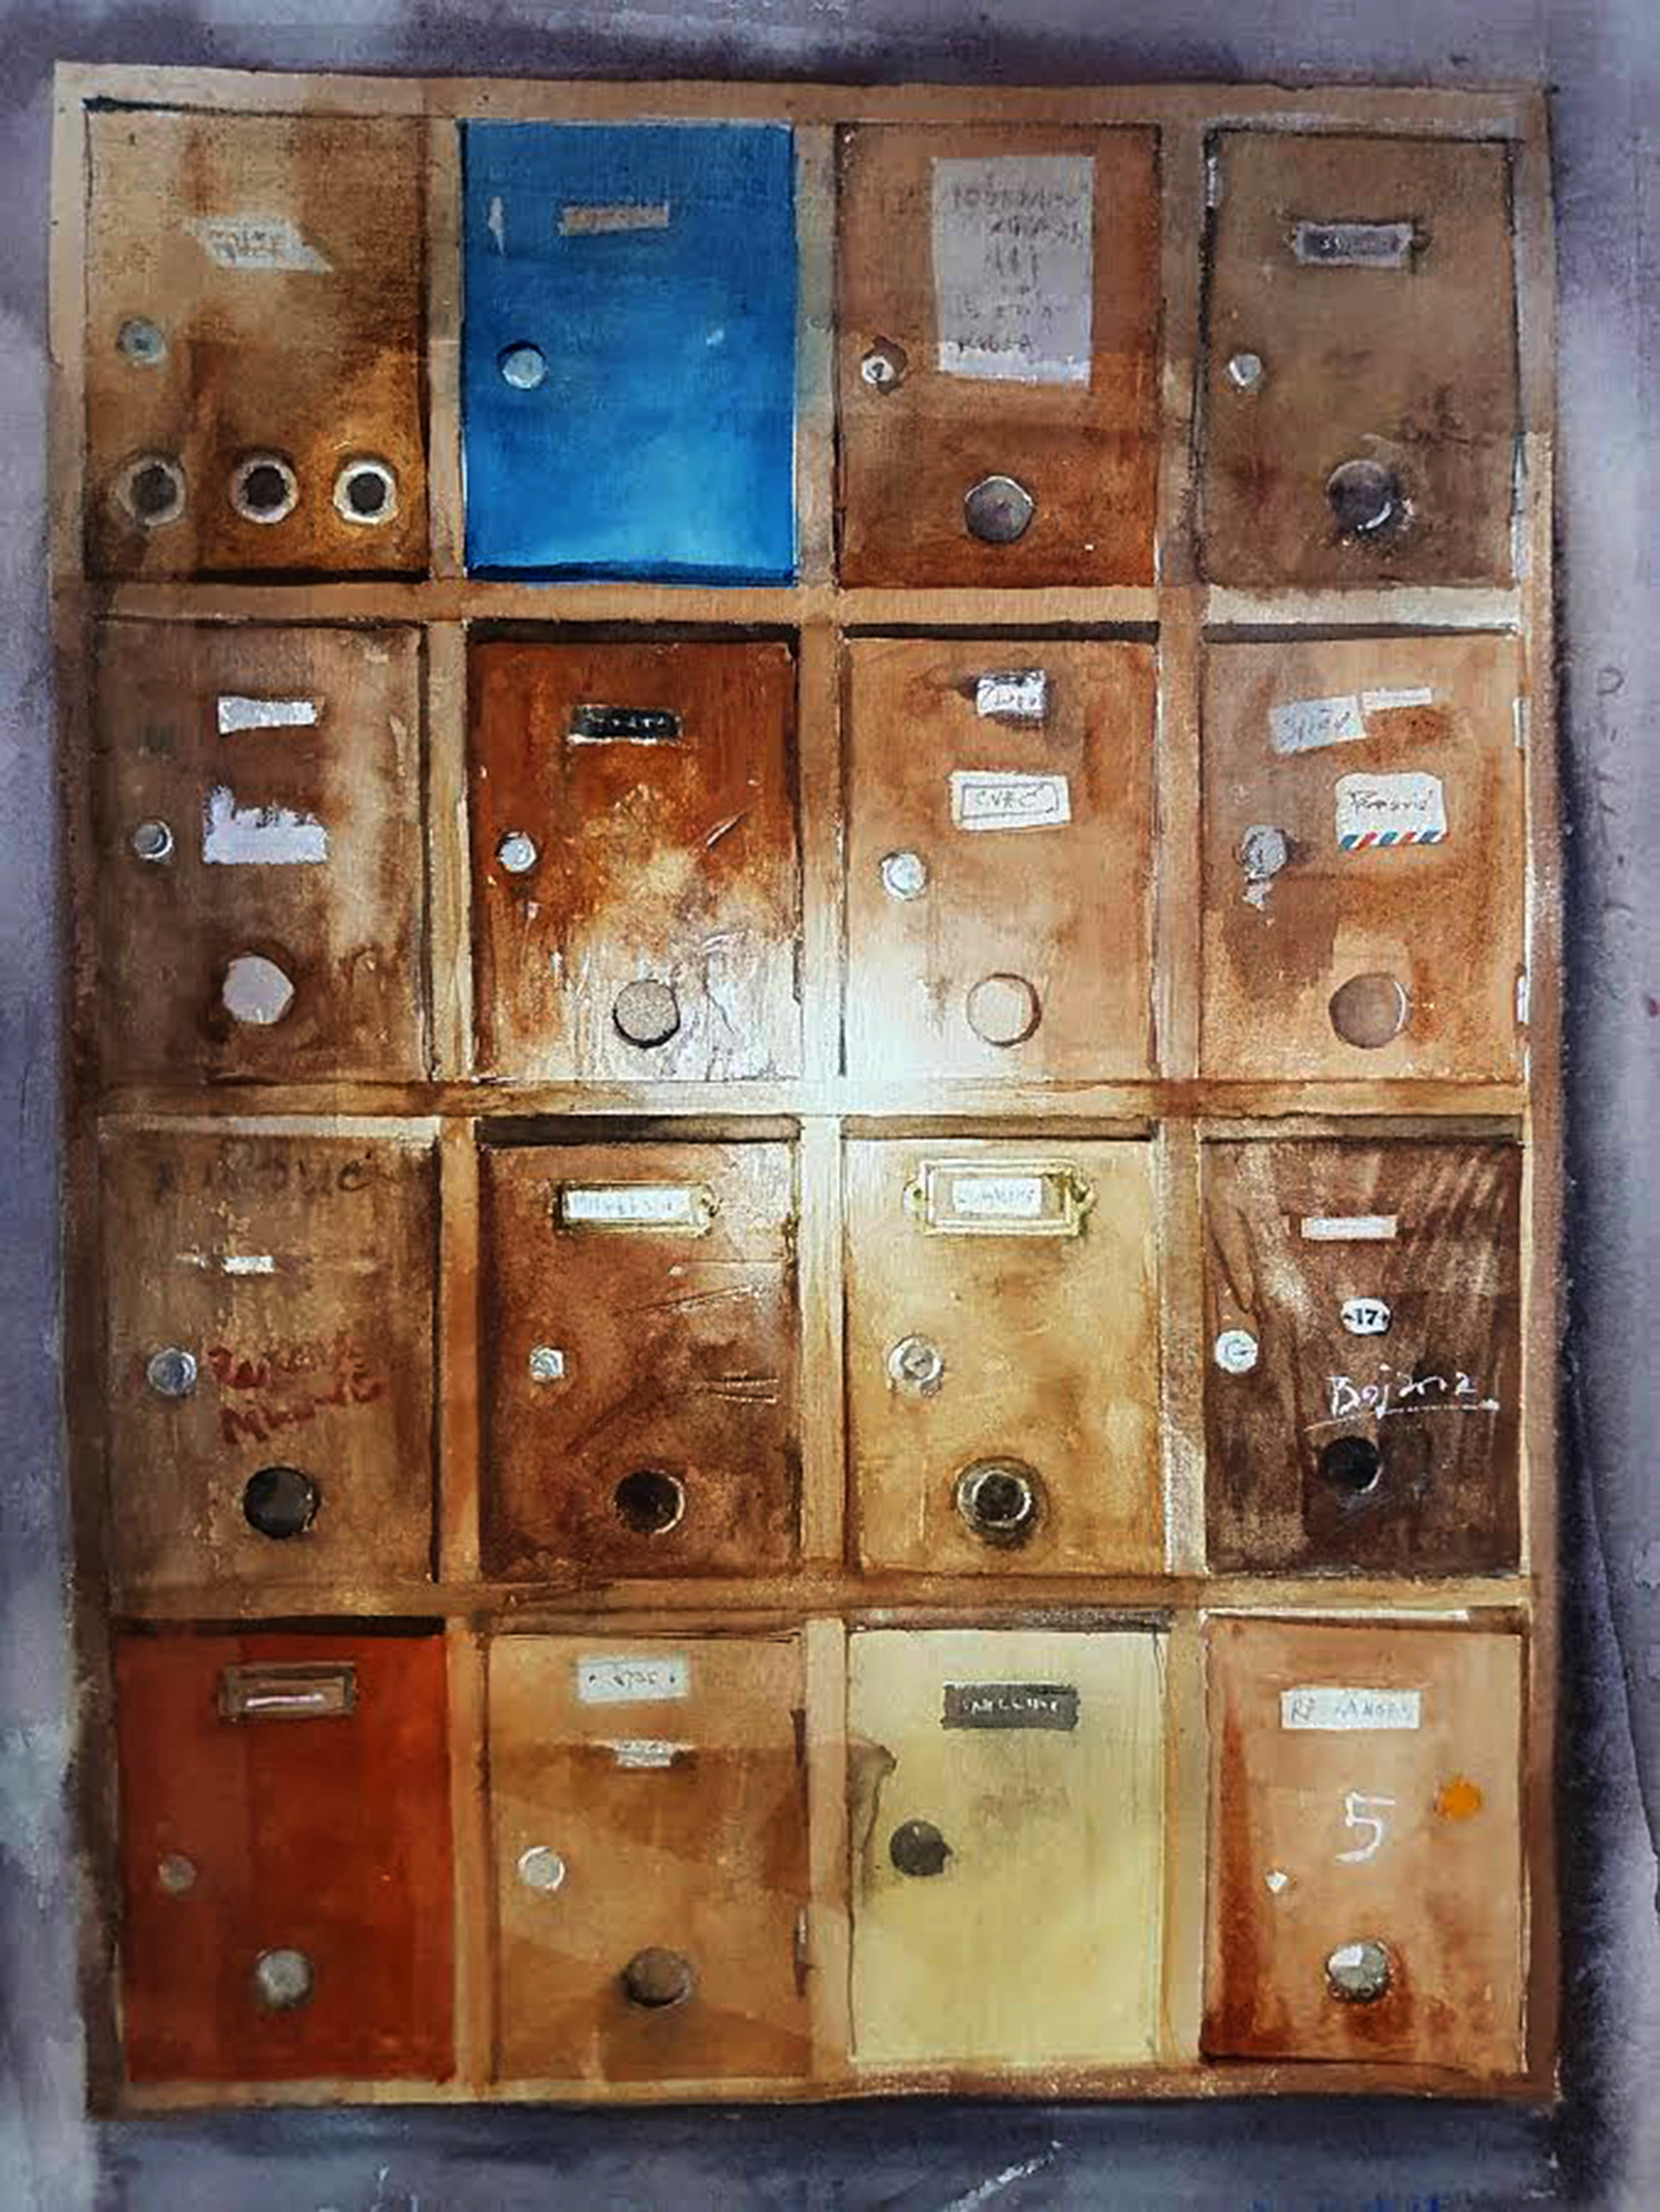 #WorldWatercolorGroup - watercolor by Dalibor Popovic Miksa of mail boxes - #doodlewash